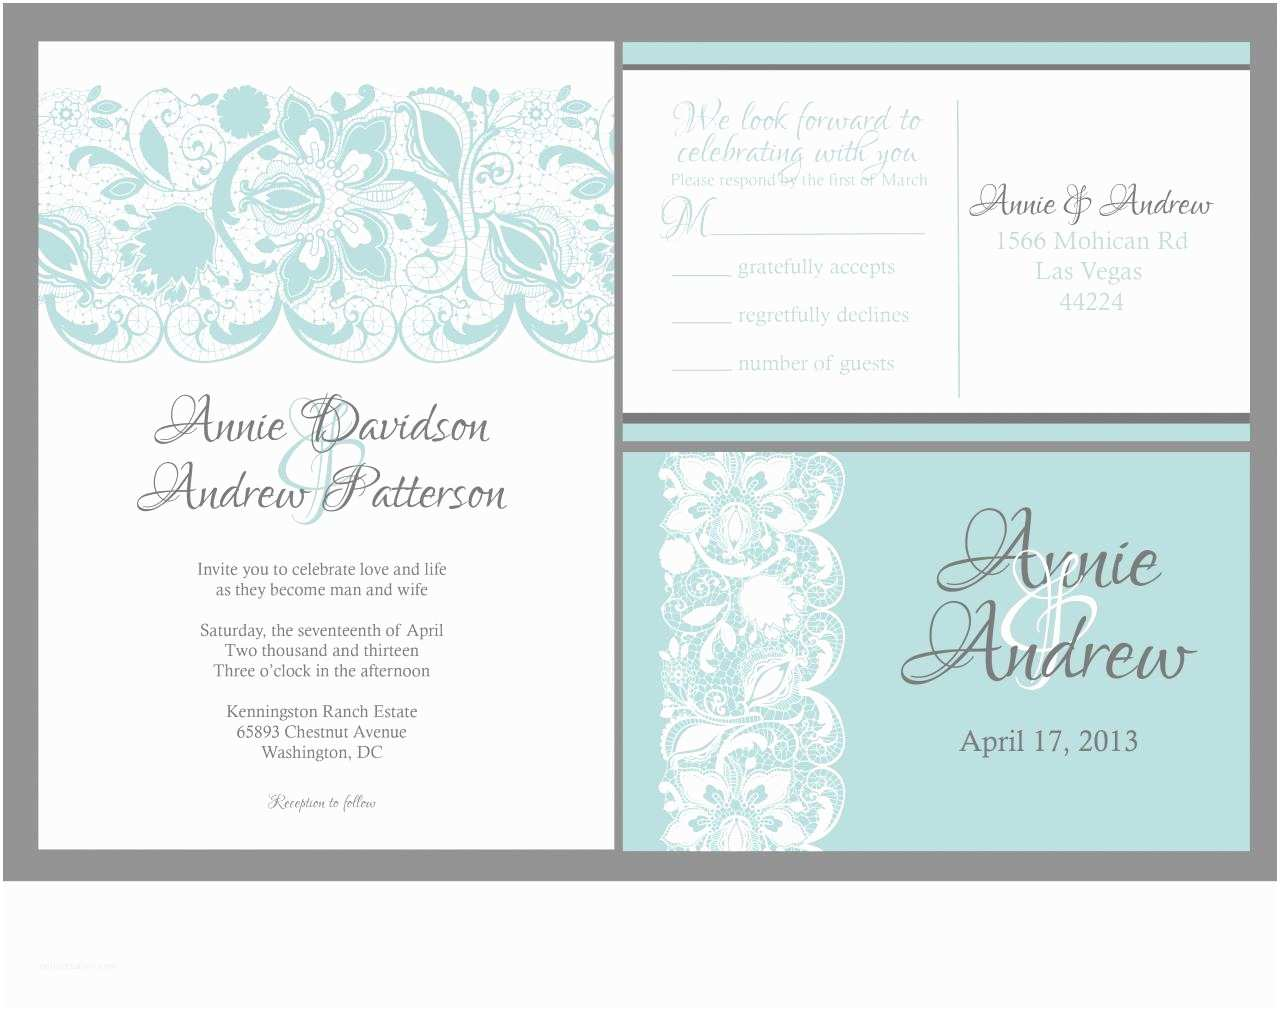 100 Personalised Wedding Invitations 100 Sets Personalized Wedding Invitation with Love Birds